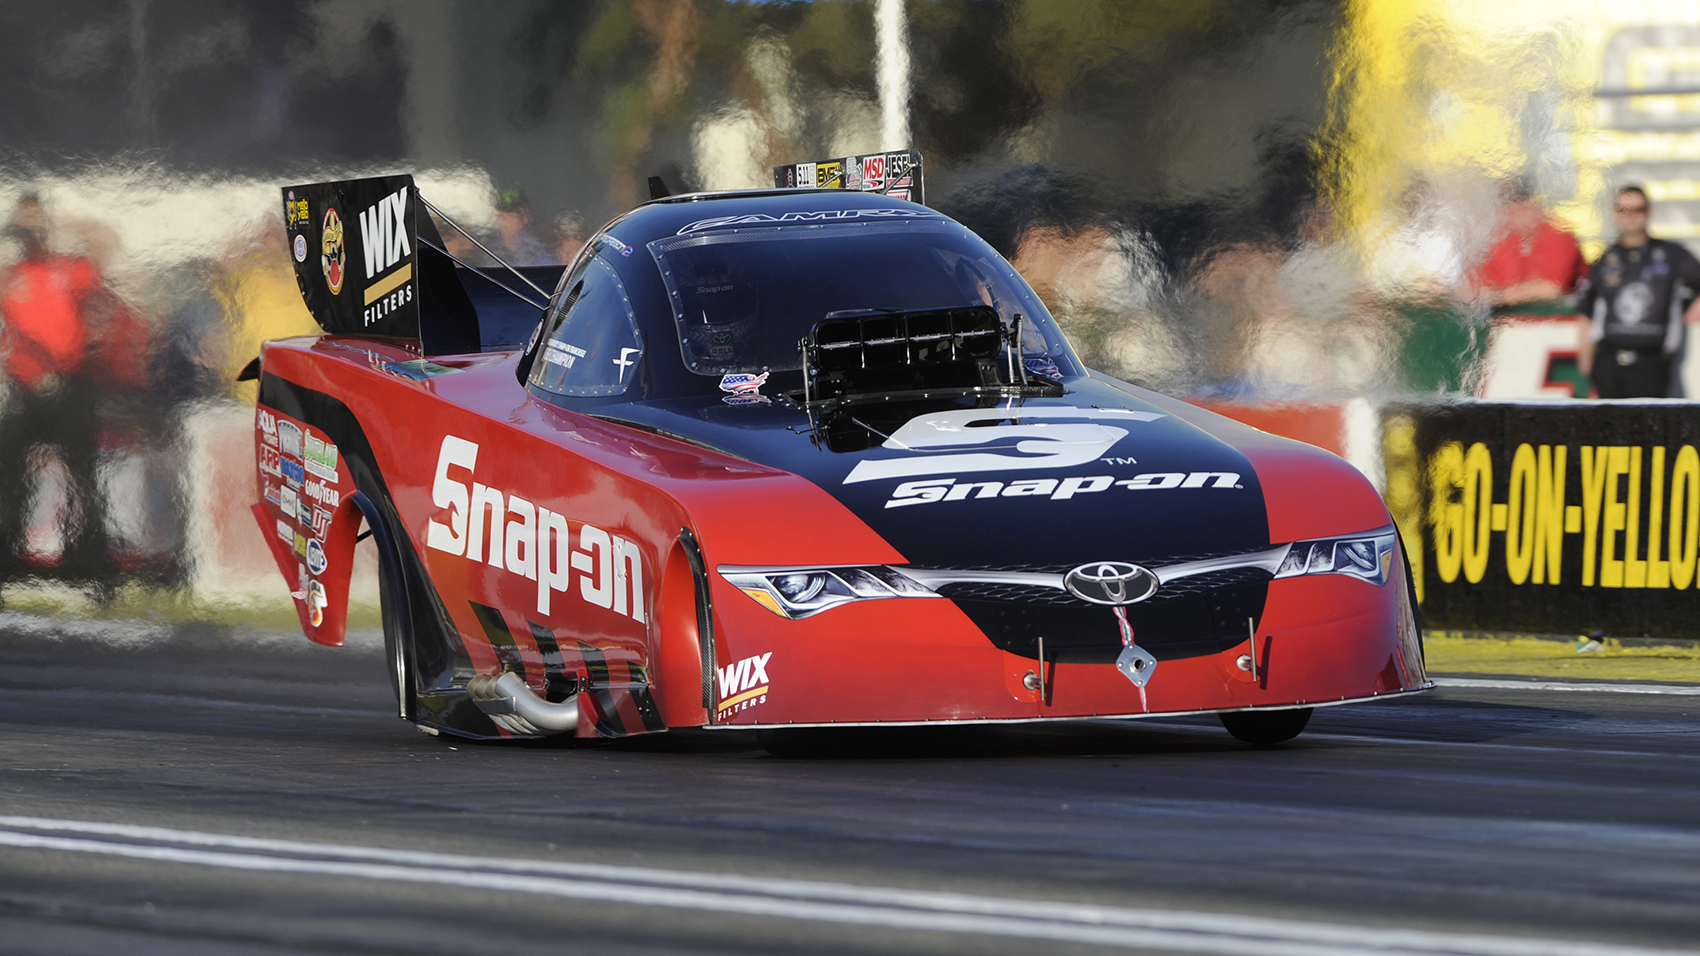 Cruz Pedregon is currently sponsored by Snap-on Tools in the NHRA Funny Car division.